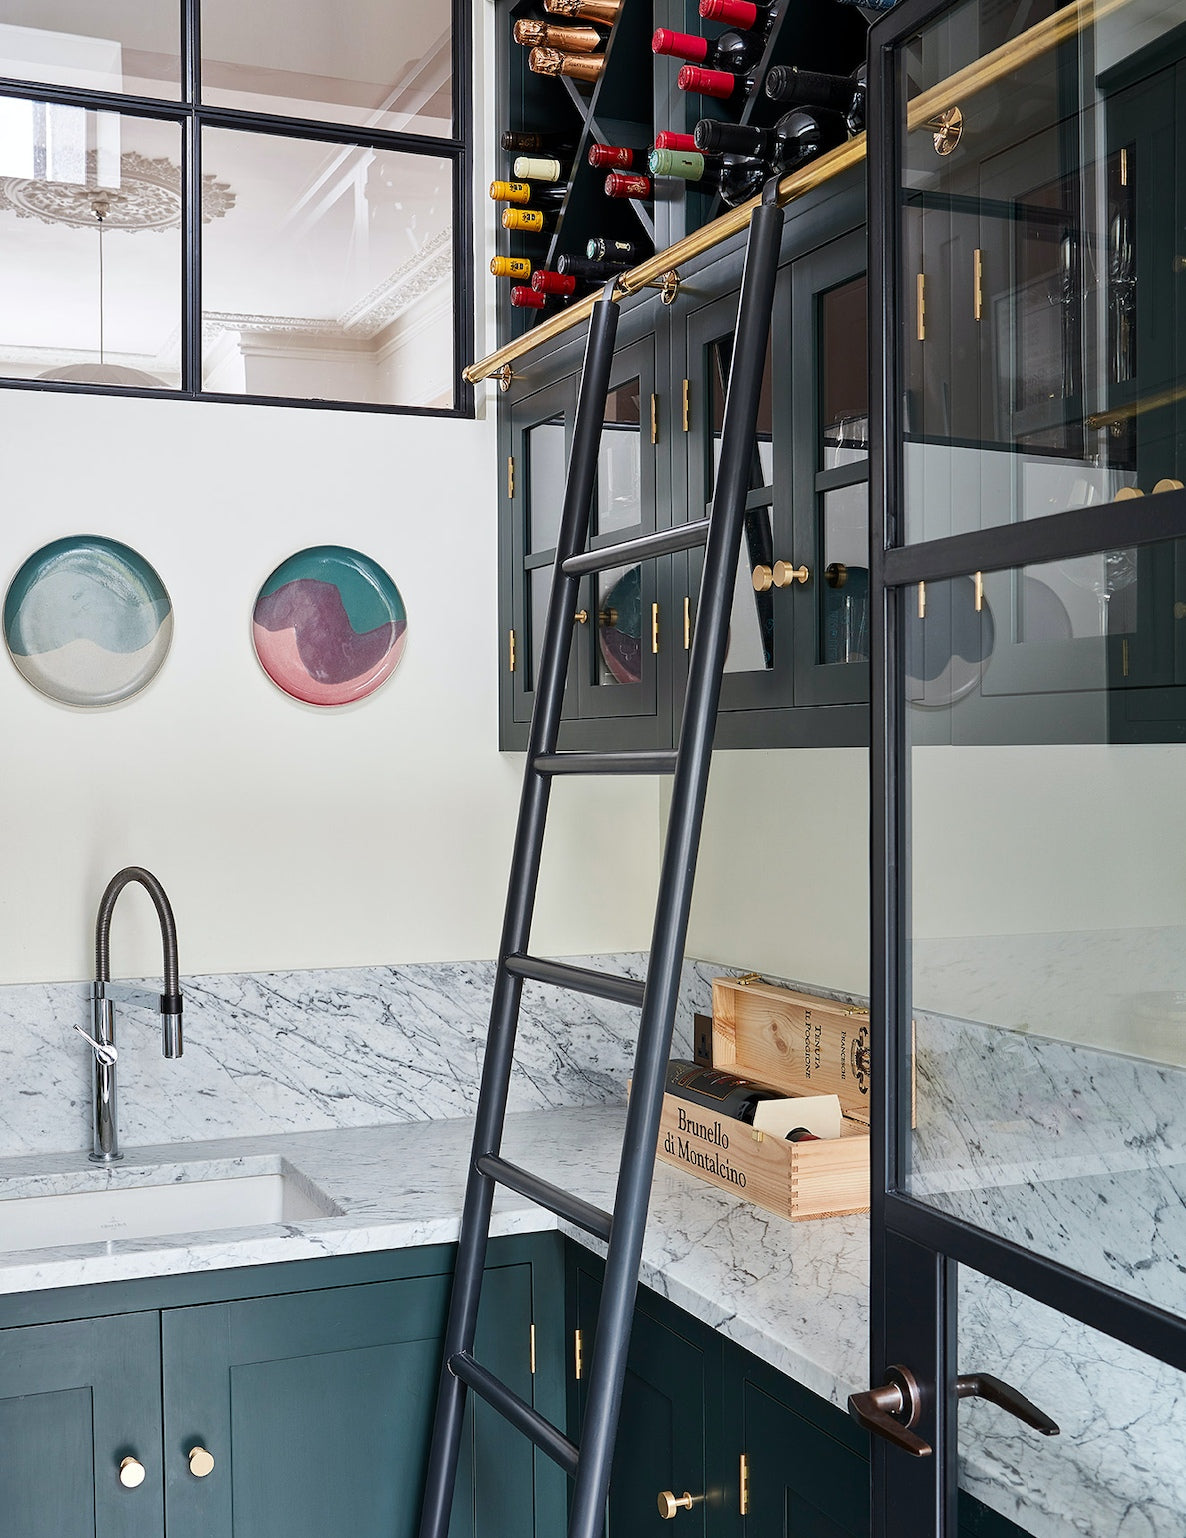 Ladders In Kitchens - The Latest Kitchen Trends in 2019 with Blakes London - LuxDeco.com